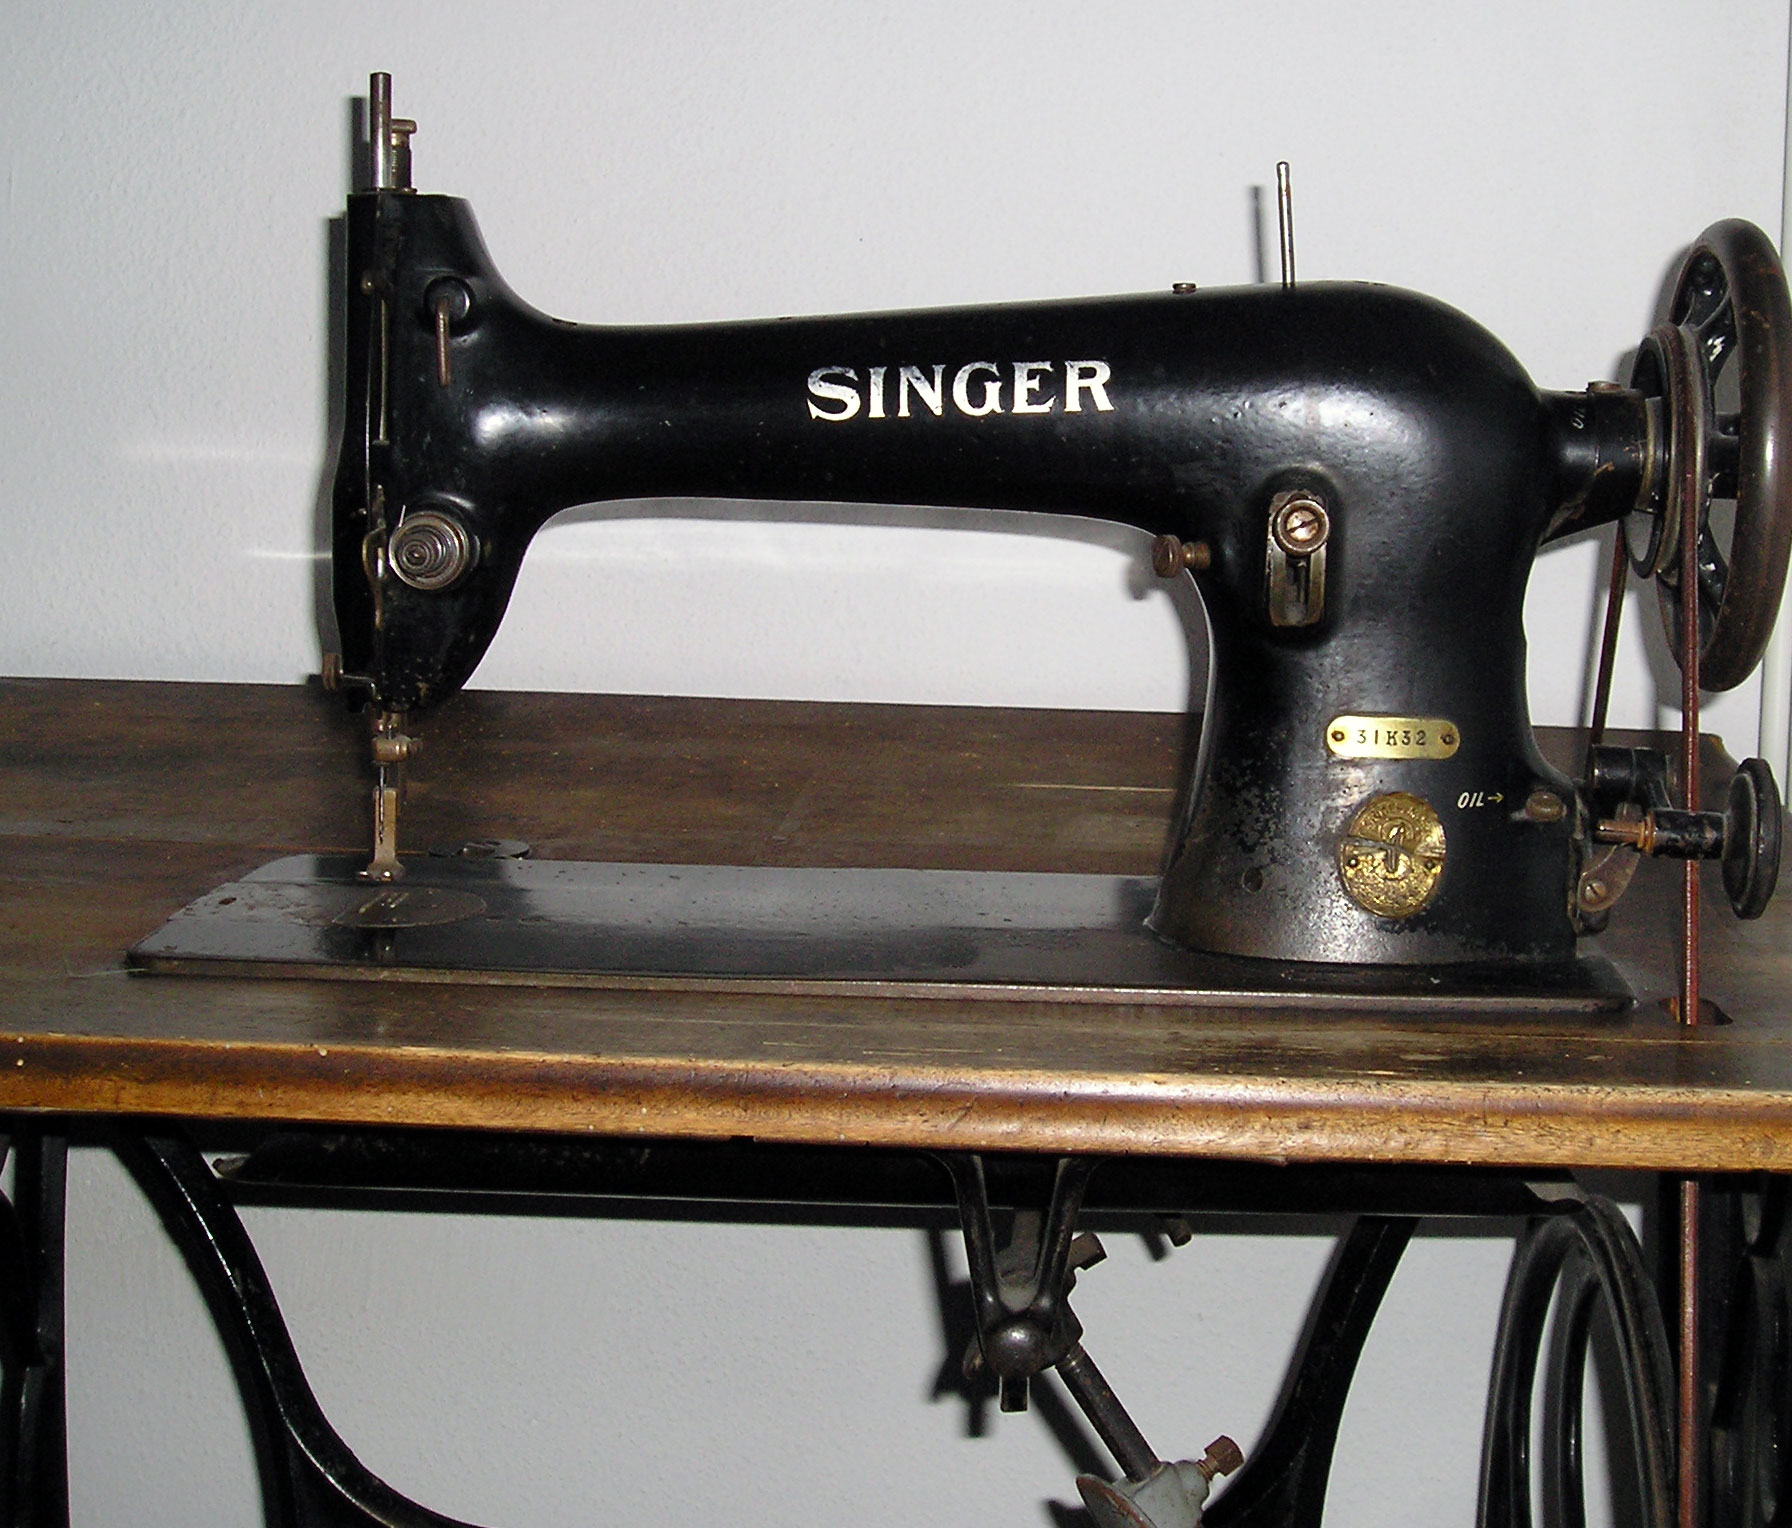 ISAAC SINGER, SEWALOT, - SUSSEX SEWING MACHINES.SEWALOT.COM HOMEPAGE